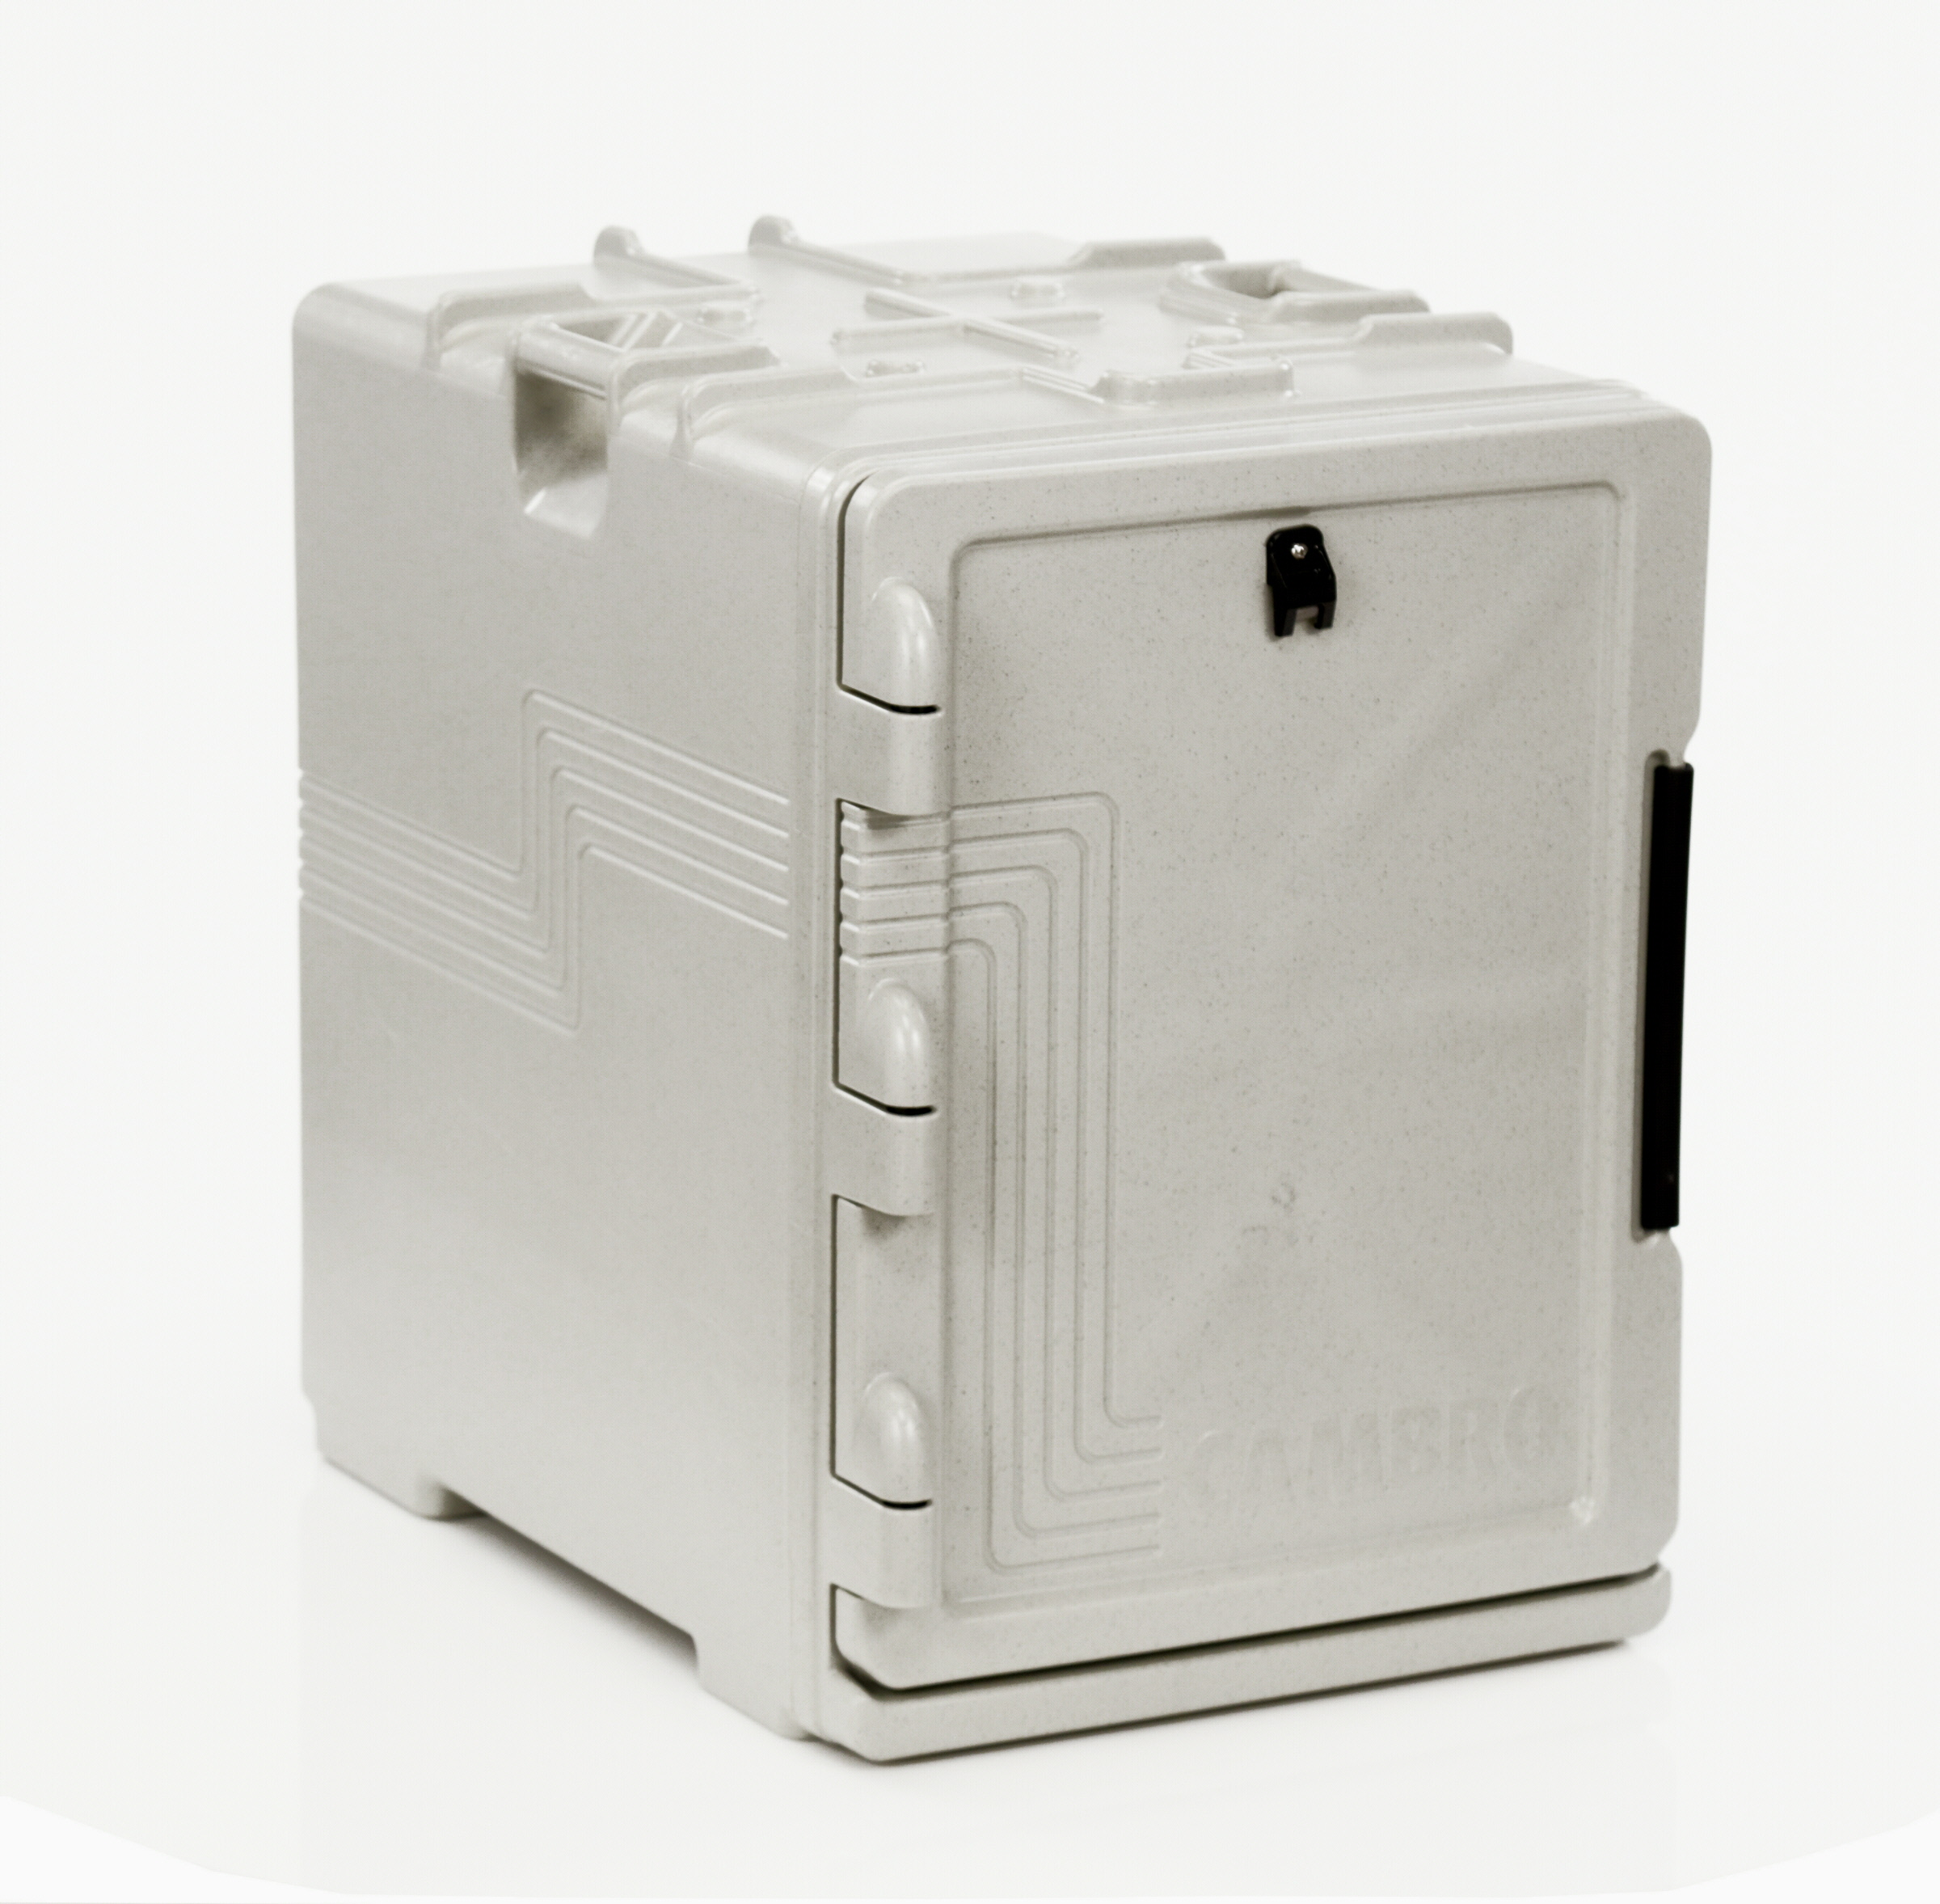 ULTRA PAN CARRIER® - UPCS400 - 360 view